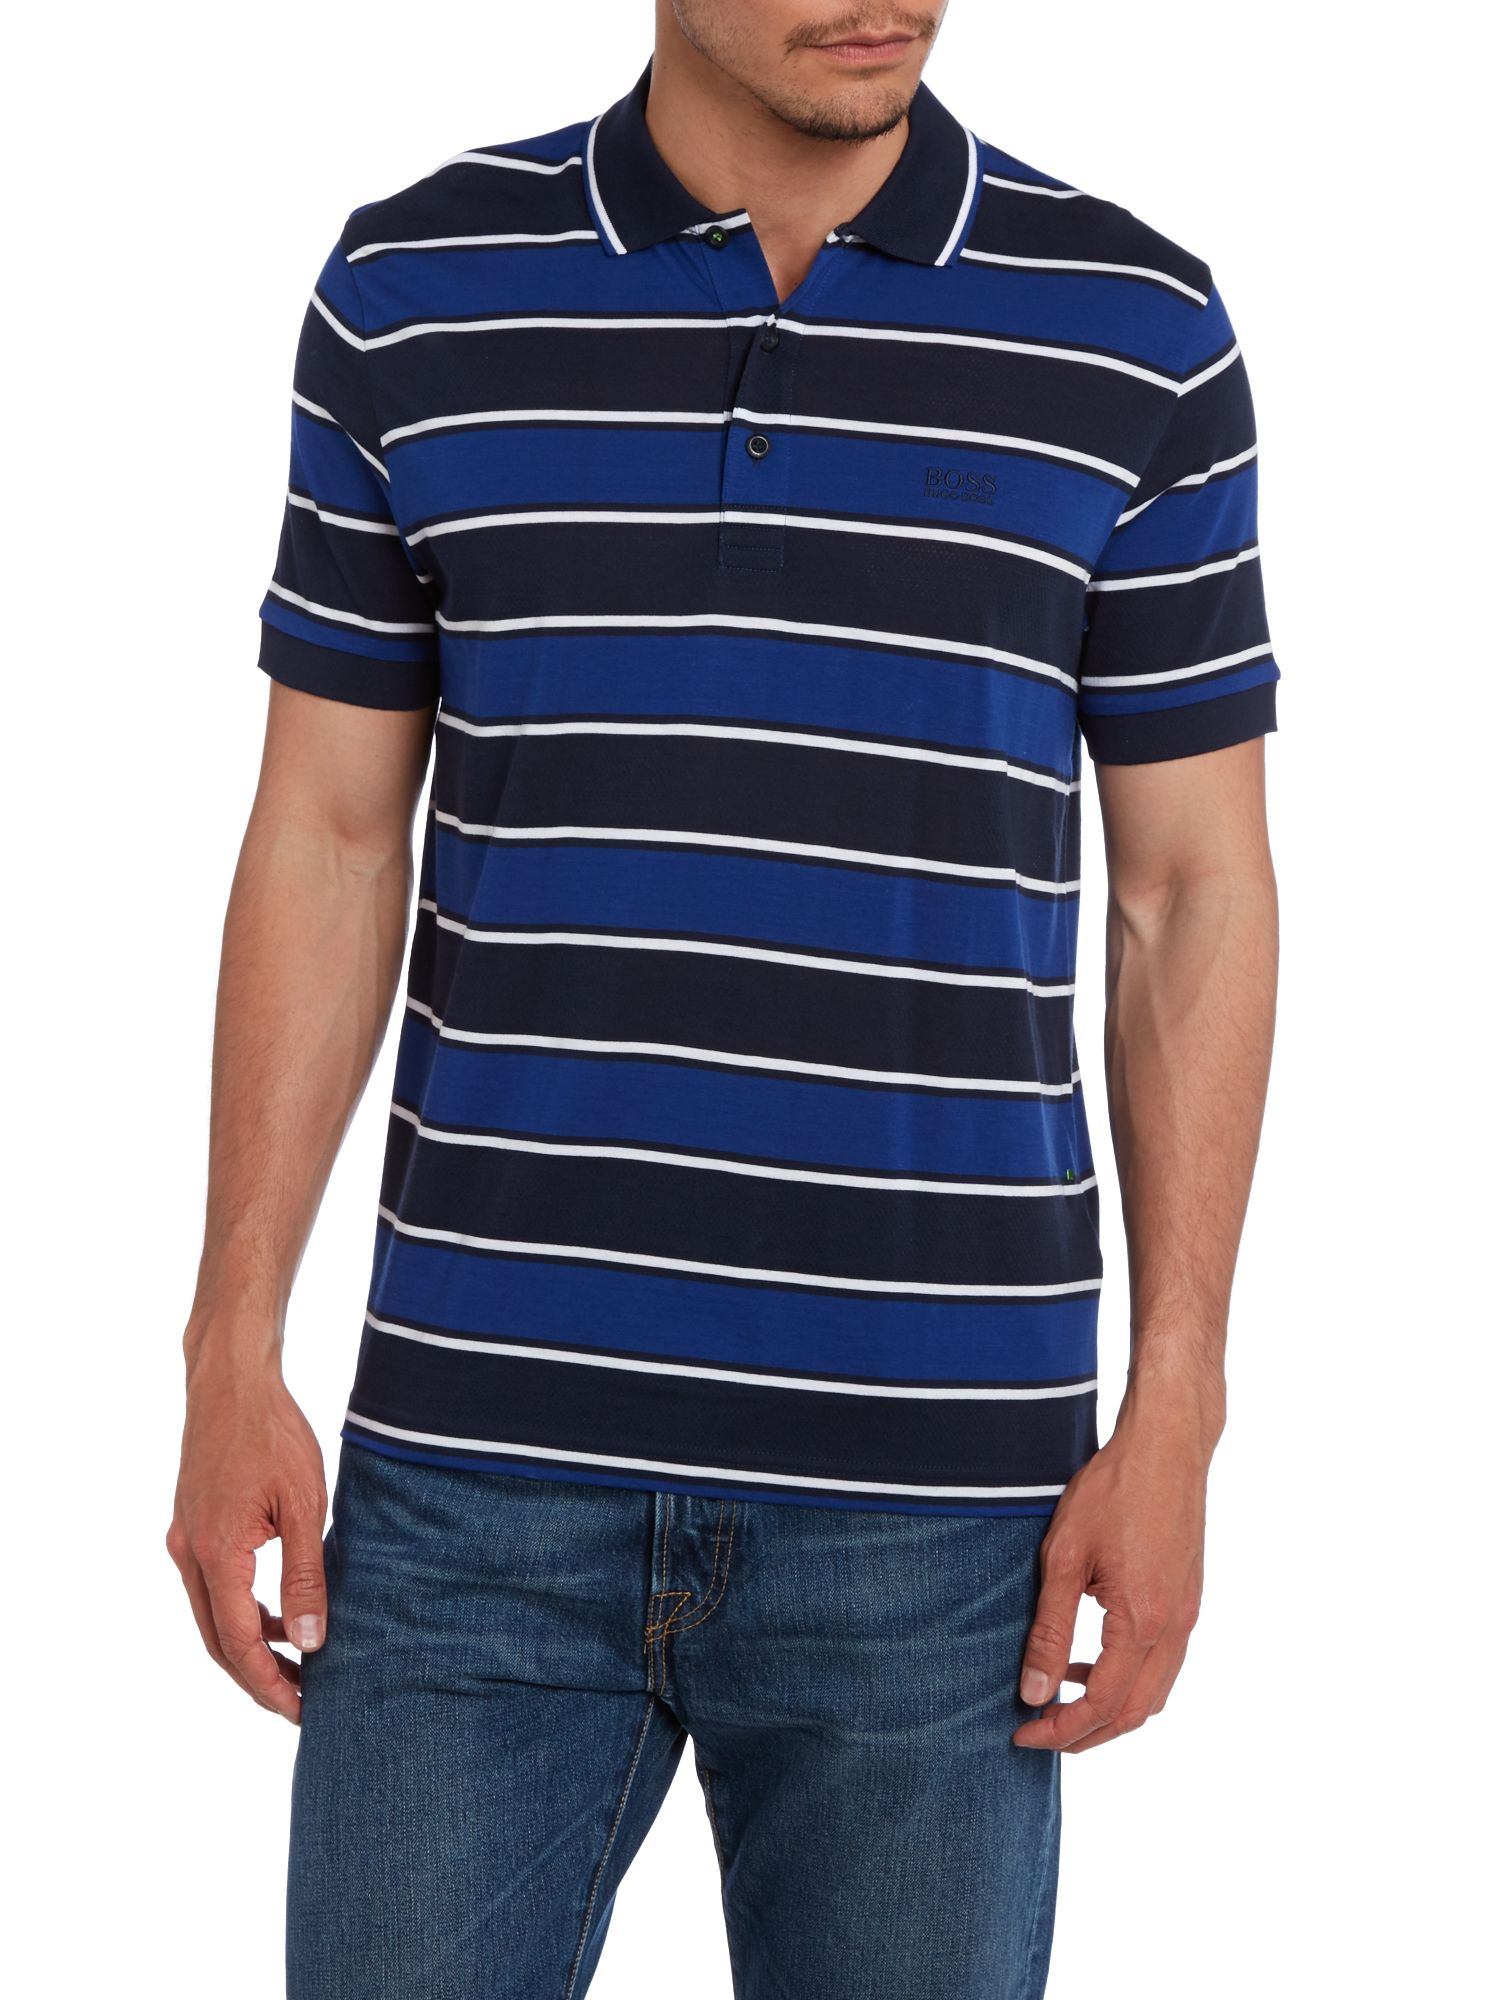 Large stripe polo shirt